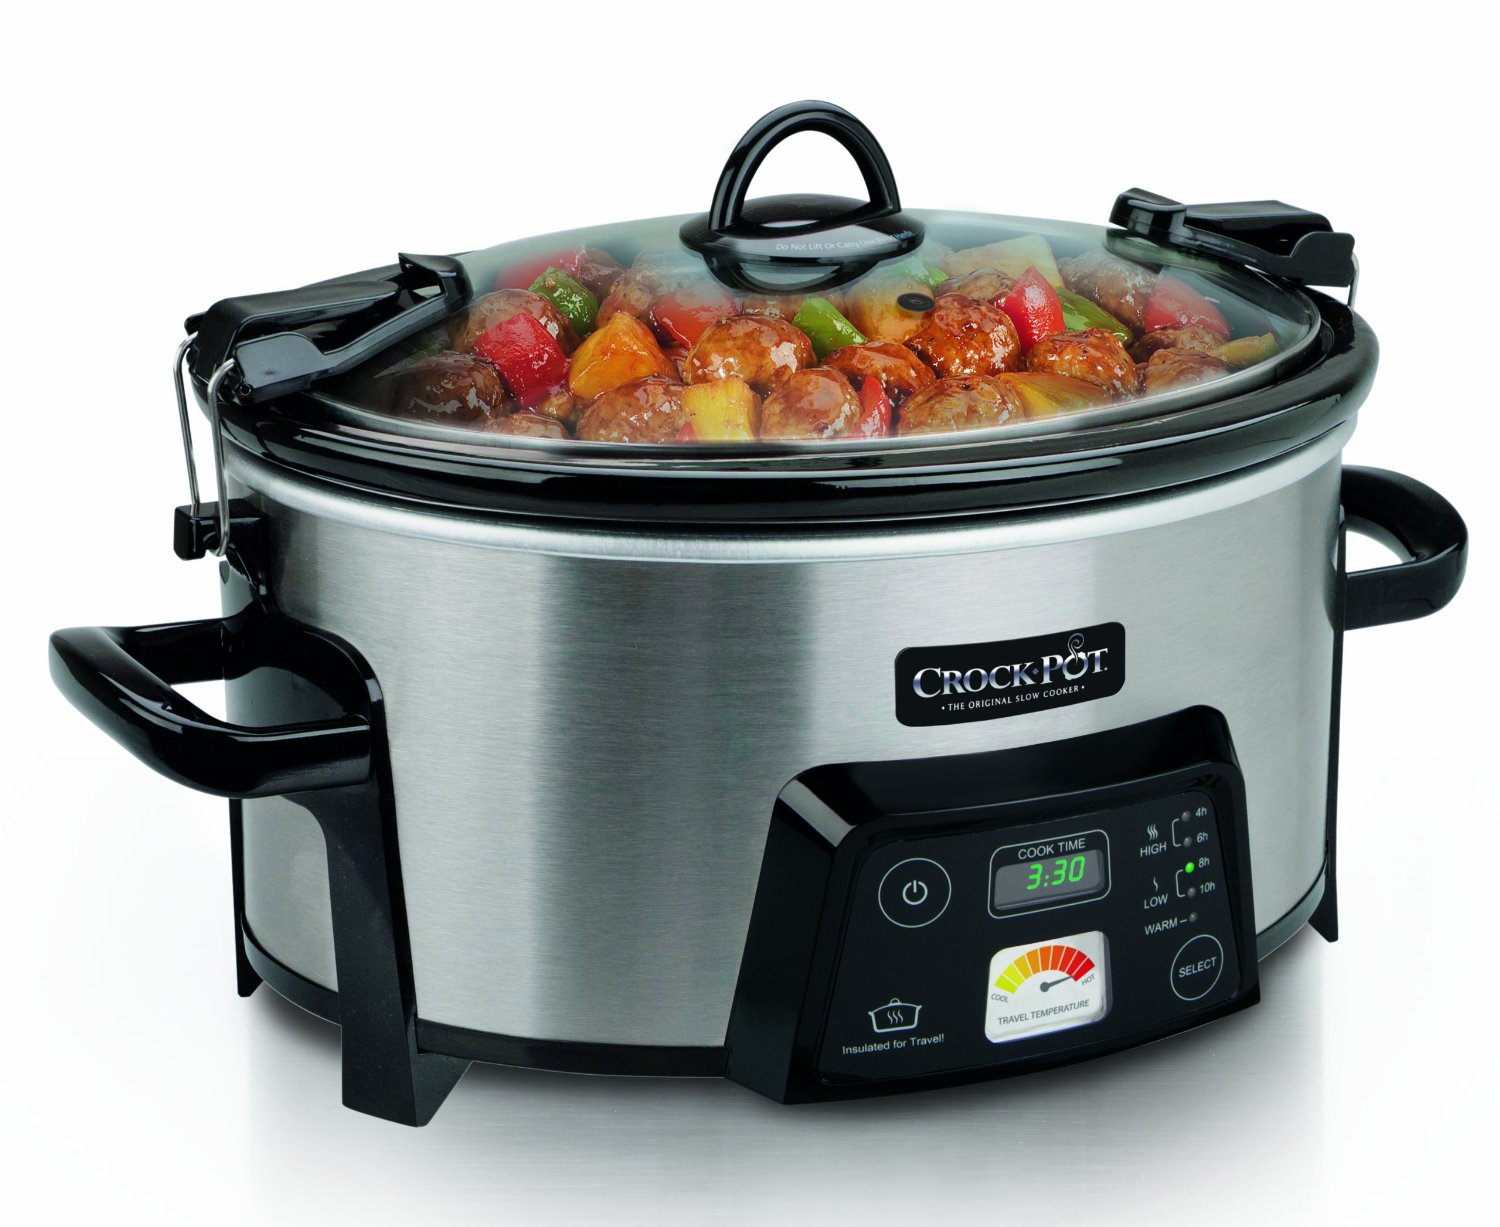 Crock Pot Programmable Slow Cooker